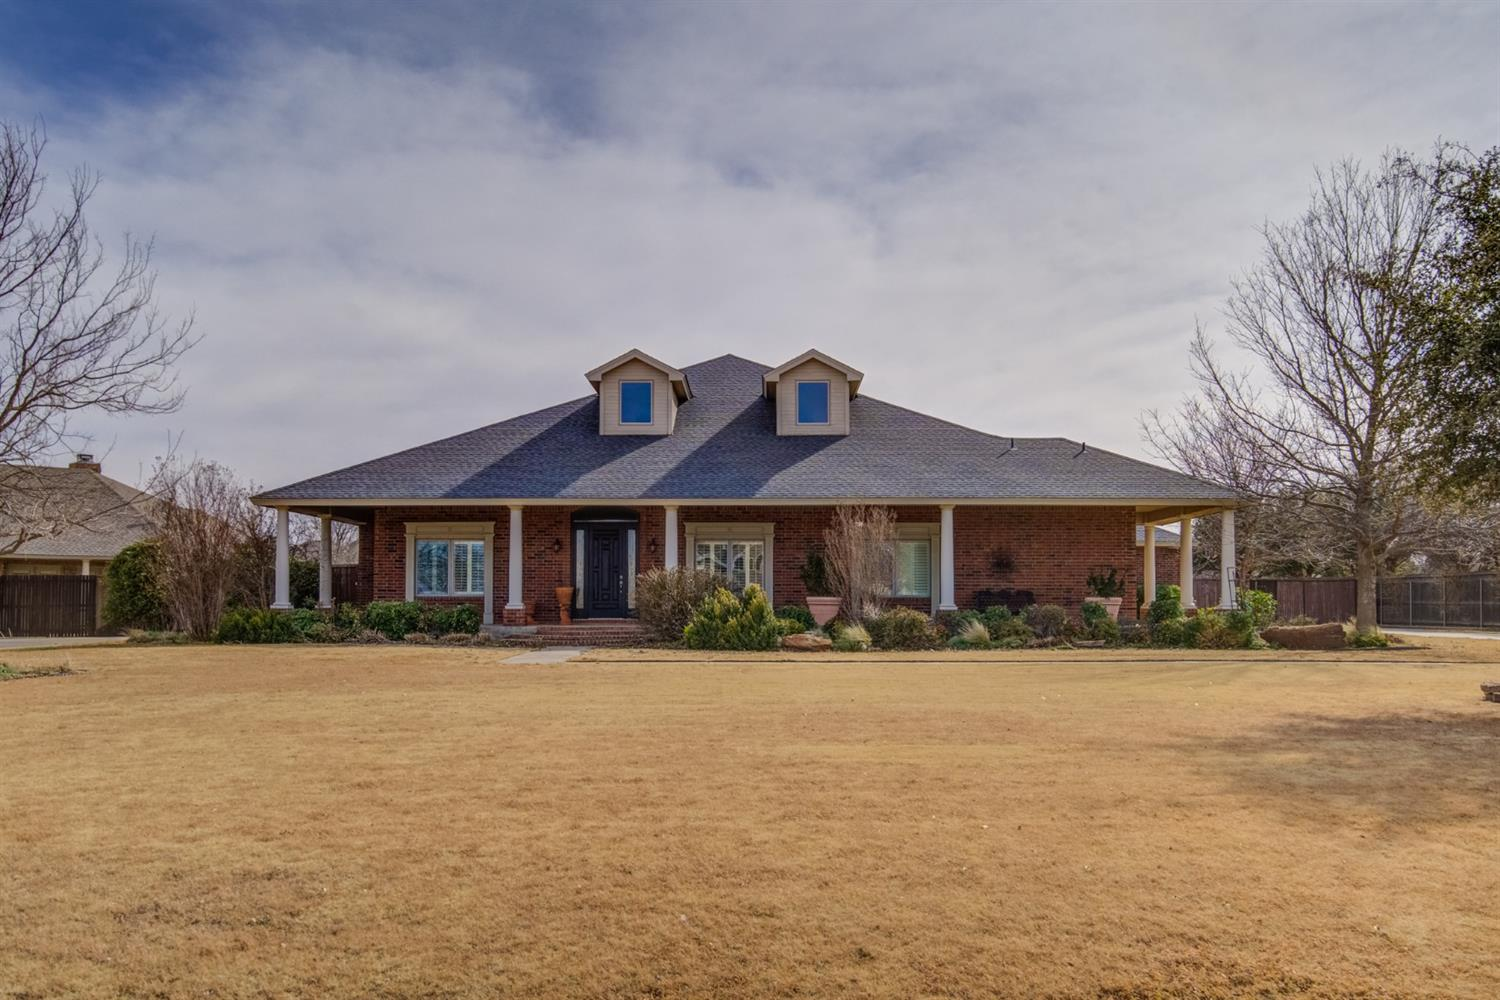 5503 County Road 7520, Lubbock in Lubbock County, TX 79424 Home for Sale